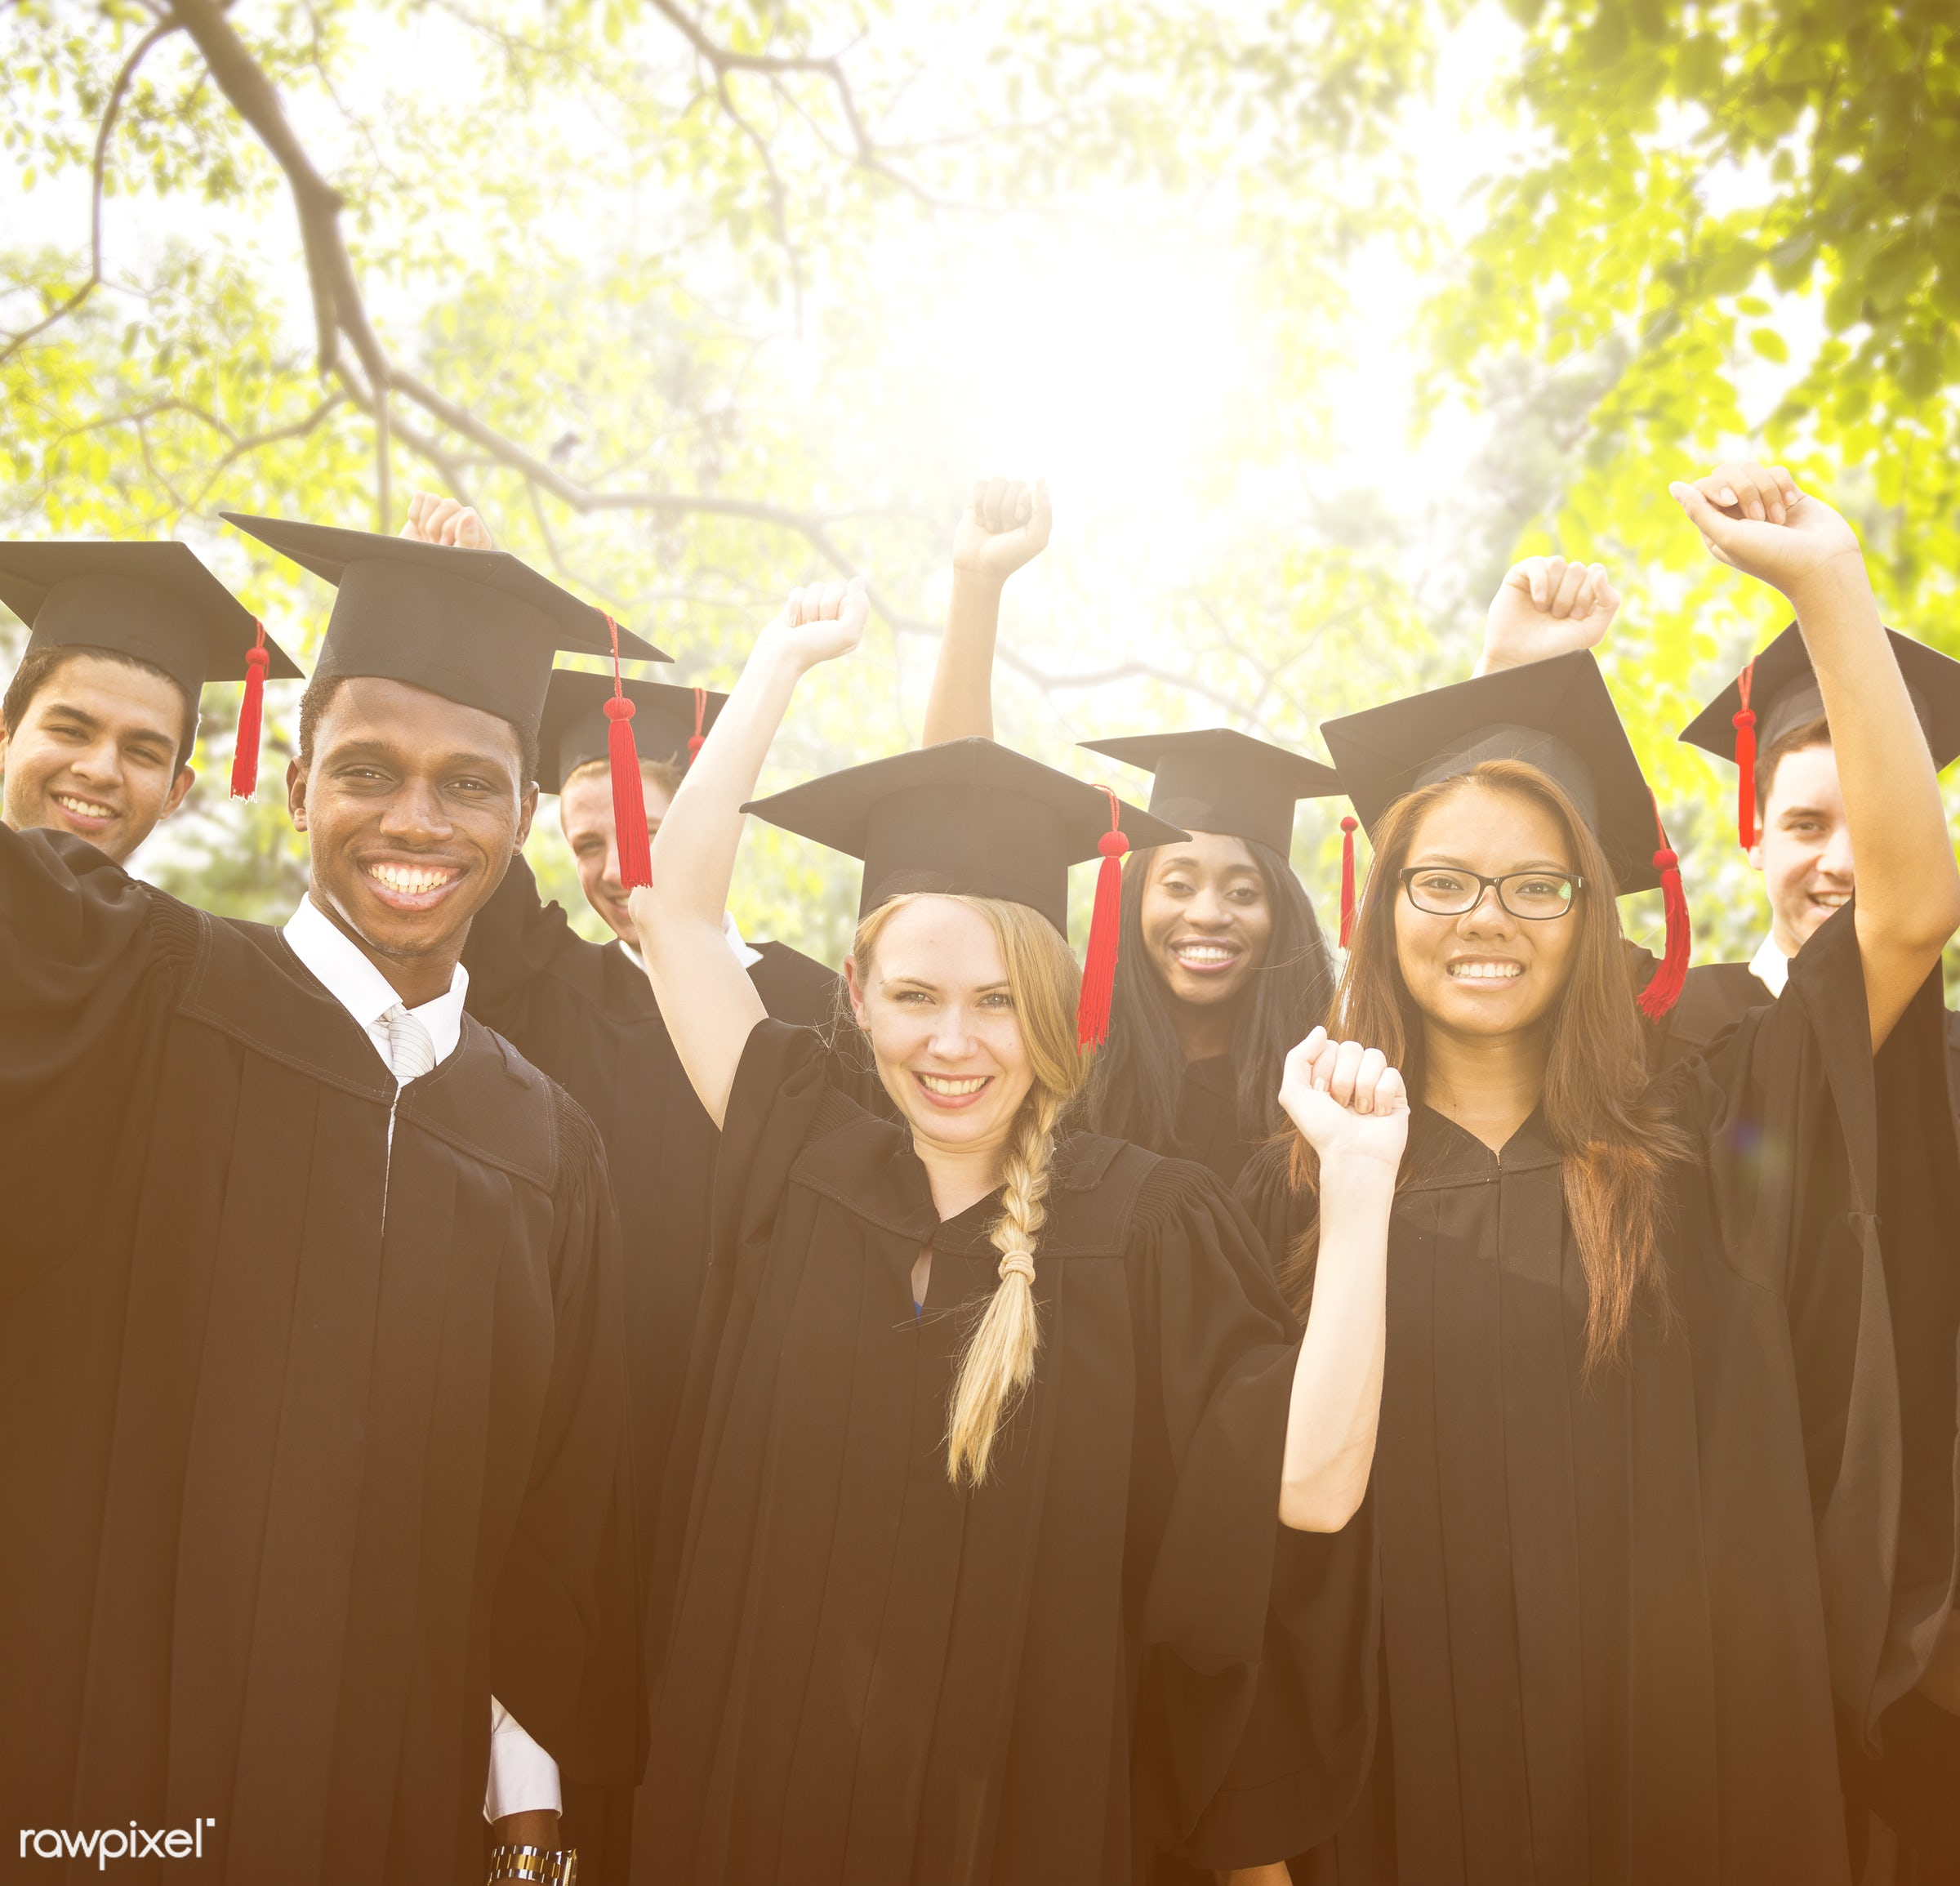 academic, achievement, african descent, asian ethnicity, campus, celebration, ceremony, cheerful, college, commencement,...